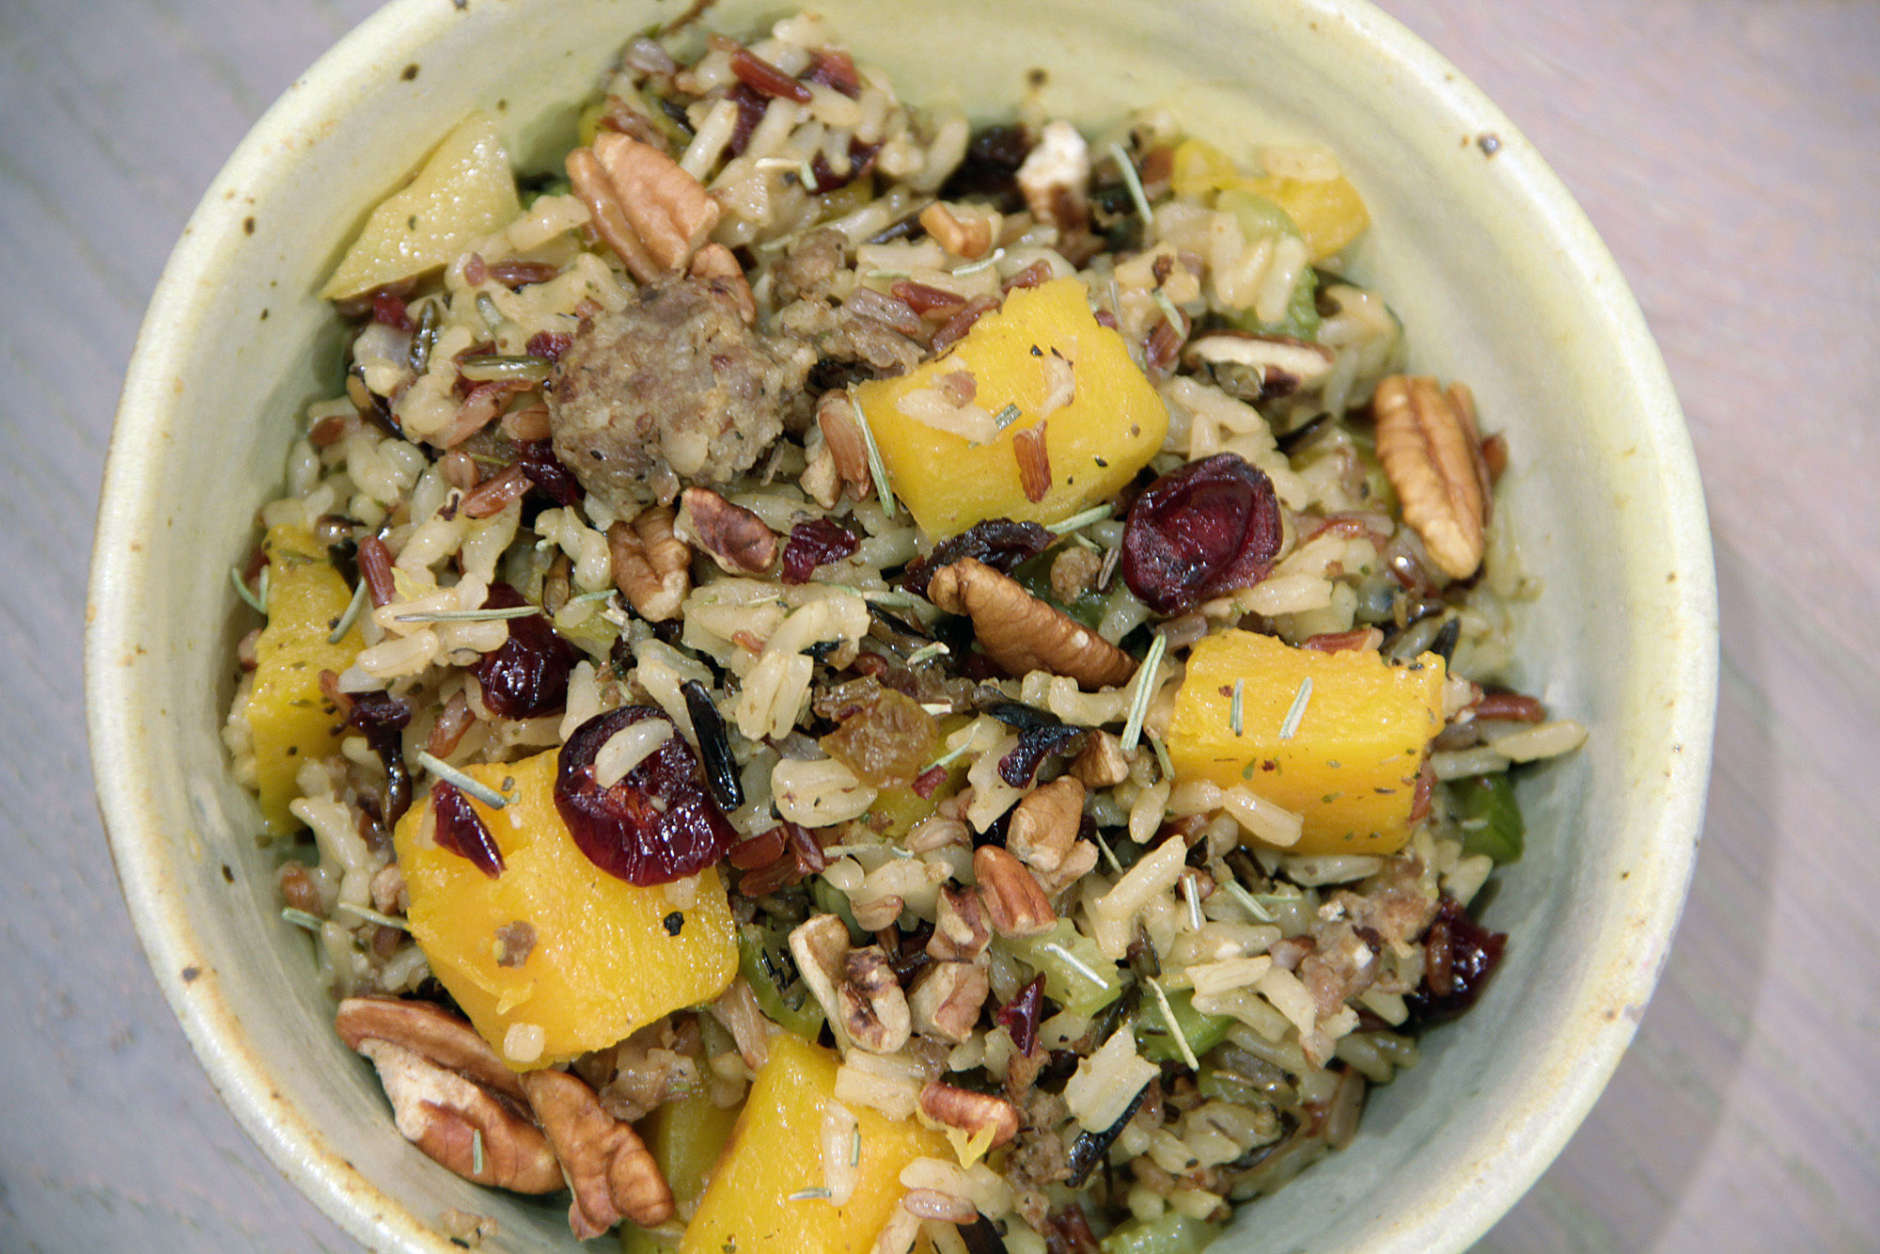 This Oct. 12, 2016 photo shows wild rice dressing in Coronado, Calif. This dish is from a recipe by Melissa d'Arabian. (Melissa d'Arabian via AP)